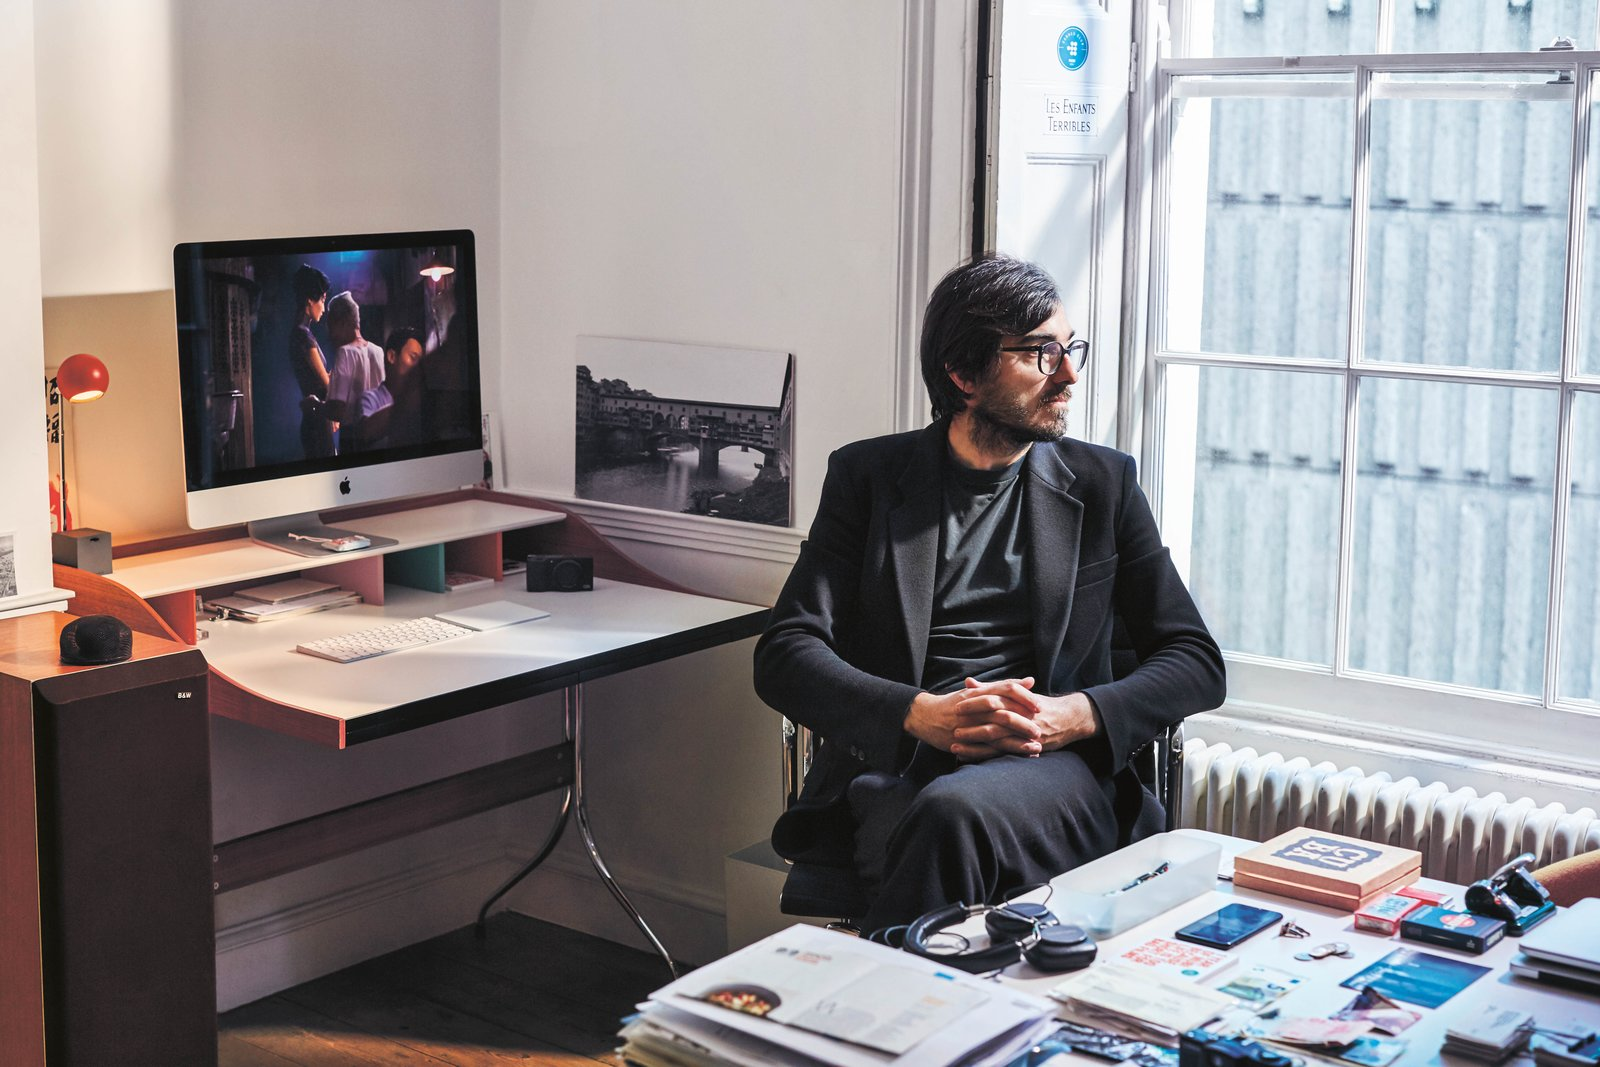 Photo 6 of 10 in Meet 40 of the World's Most Creative Entrepreneurs With  Kinfolk's New Book - Dwell